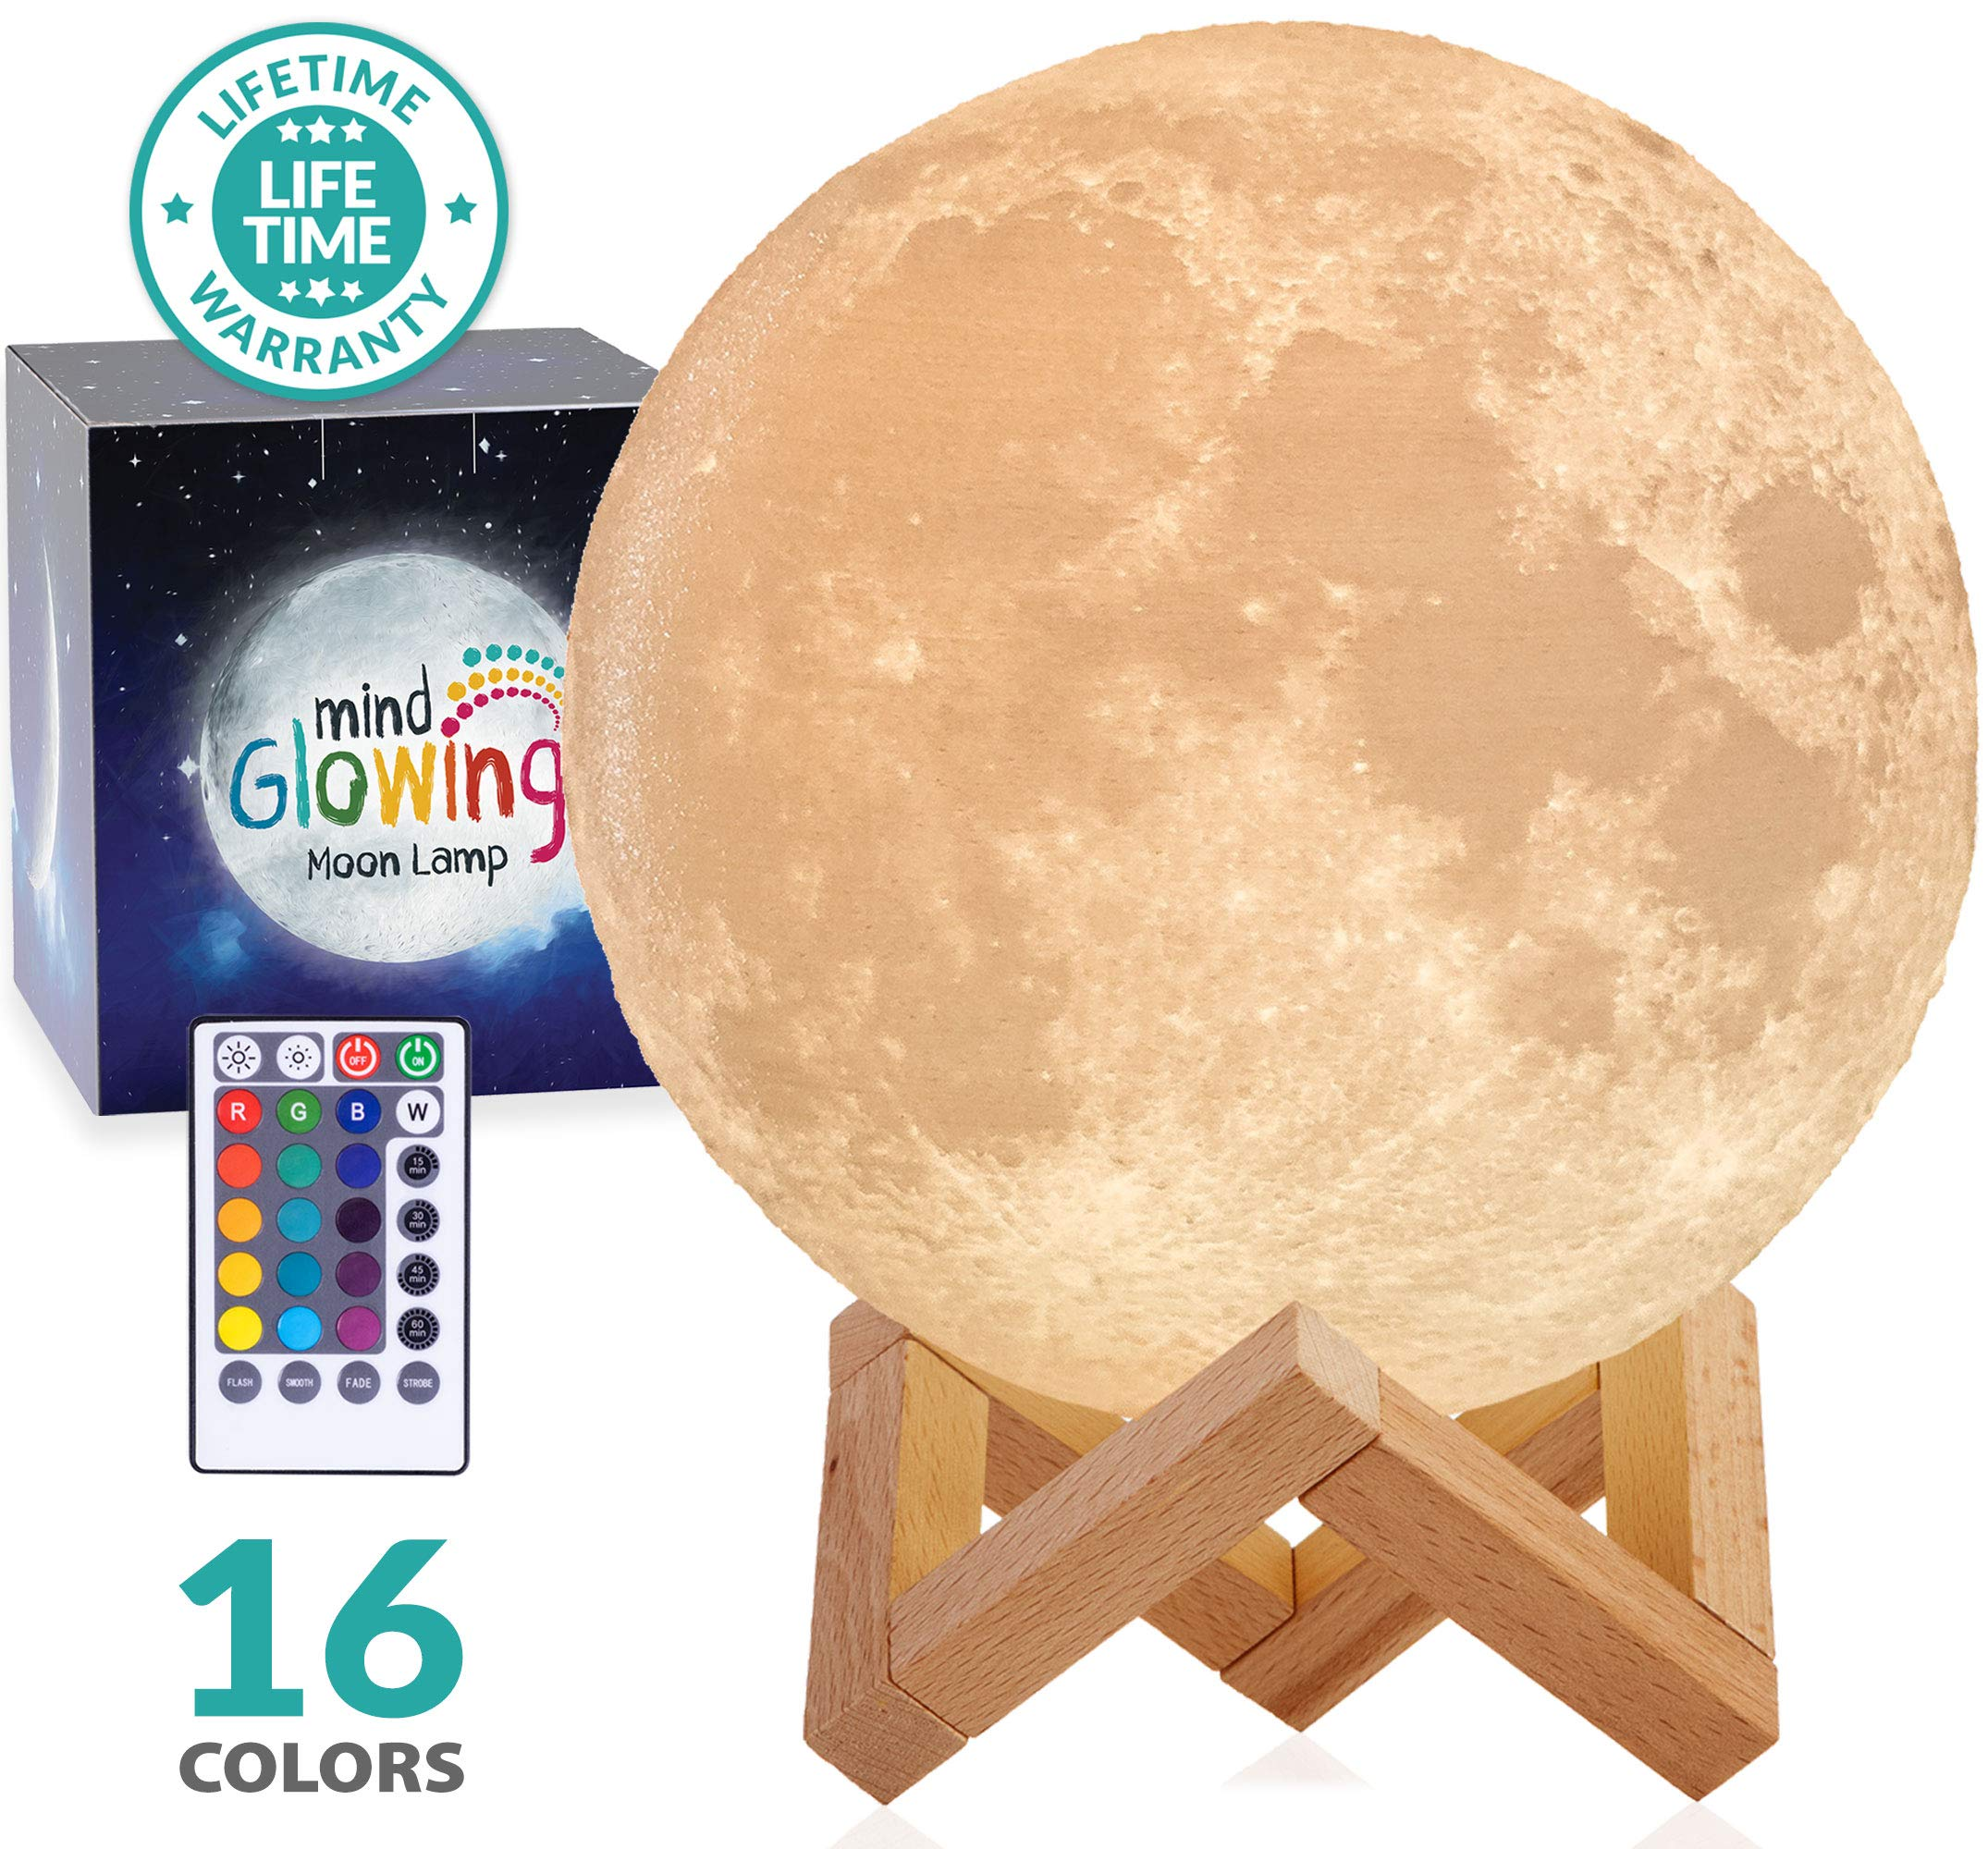 Mind-glowing 3D Moon Lamp - 16 LED Colors, Dimmable, Rechargeable Night Light (X-Large, 7.1in) with Wooden Stand, Remote & Touch Control - Nursery Decor for Your Baby, Birthday Gift Idea for Women by Mind-glowing